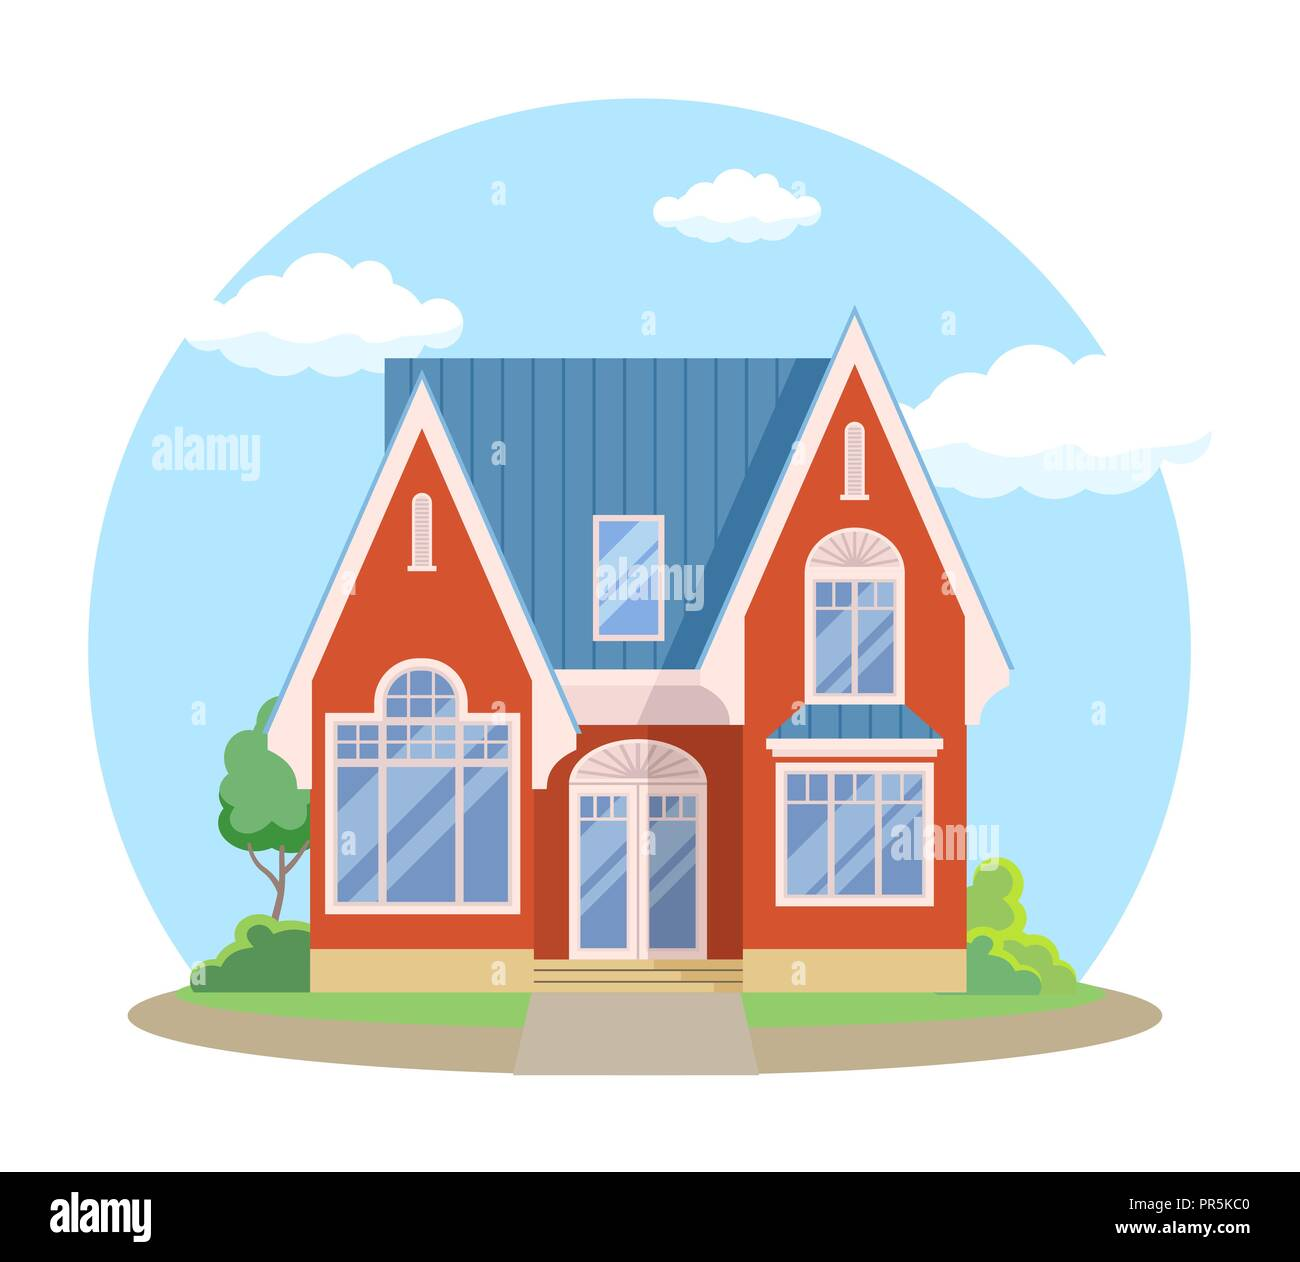 Red Cartoon House Exterior With Blue Clouded Sky Front Home Architecture Concept Flat Design Style Vector Illustration Of Facade Building Stock Vector Image Art Alamy